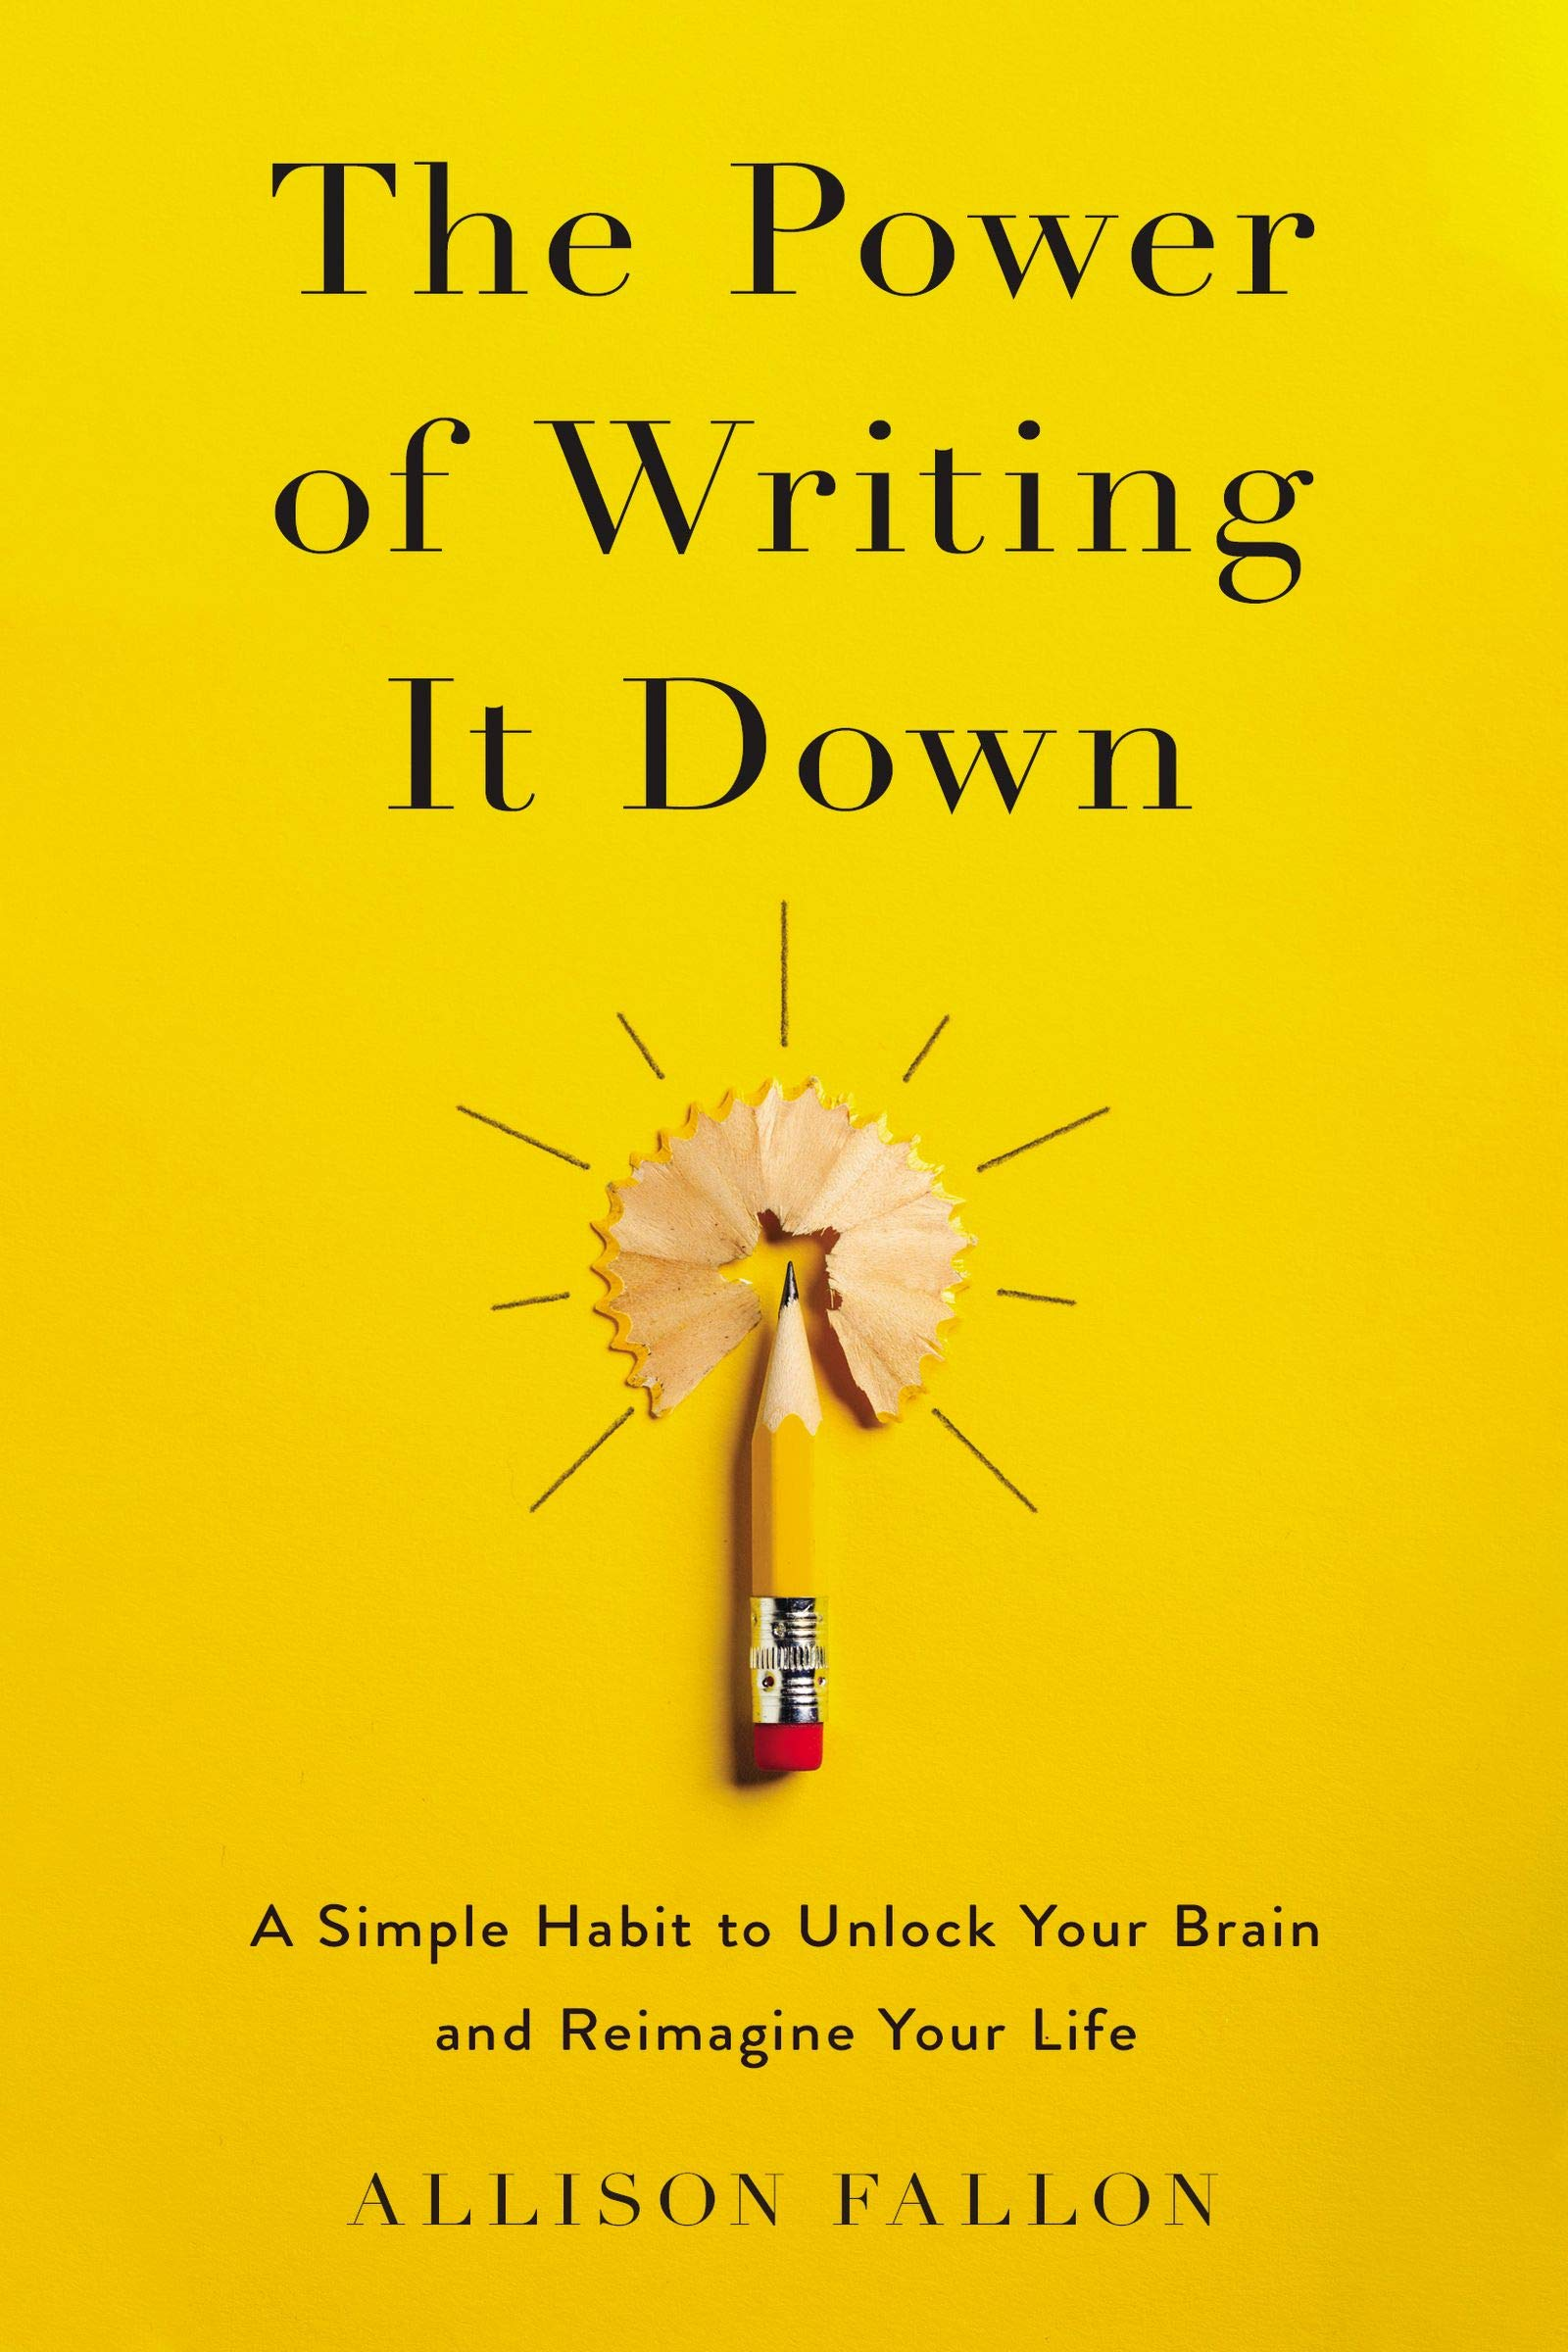 The Power of Writing It Down: A Simple Habit to Unlock Your Brain and Reimagine Your Life